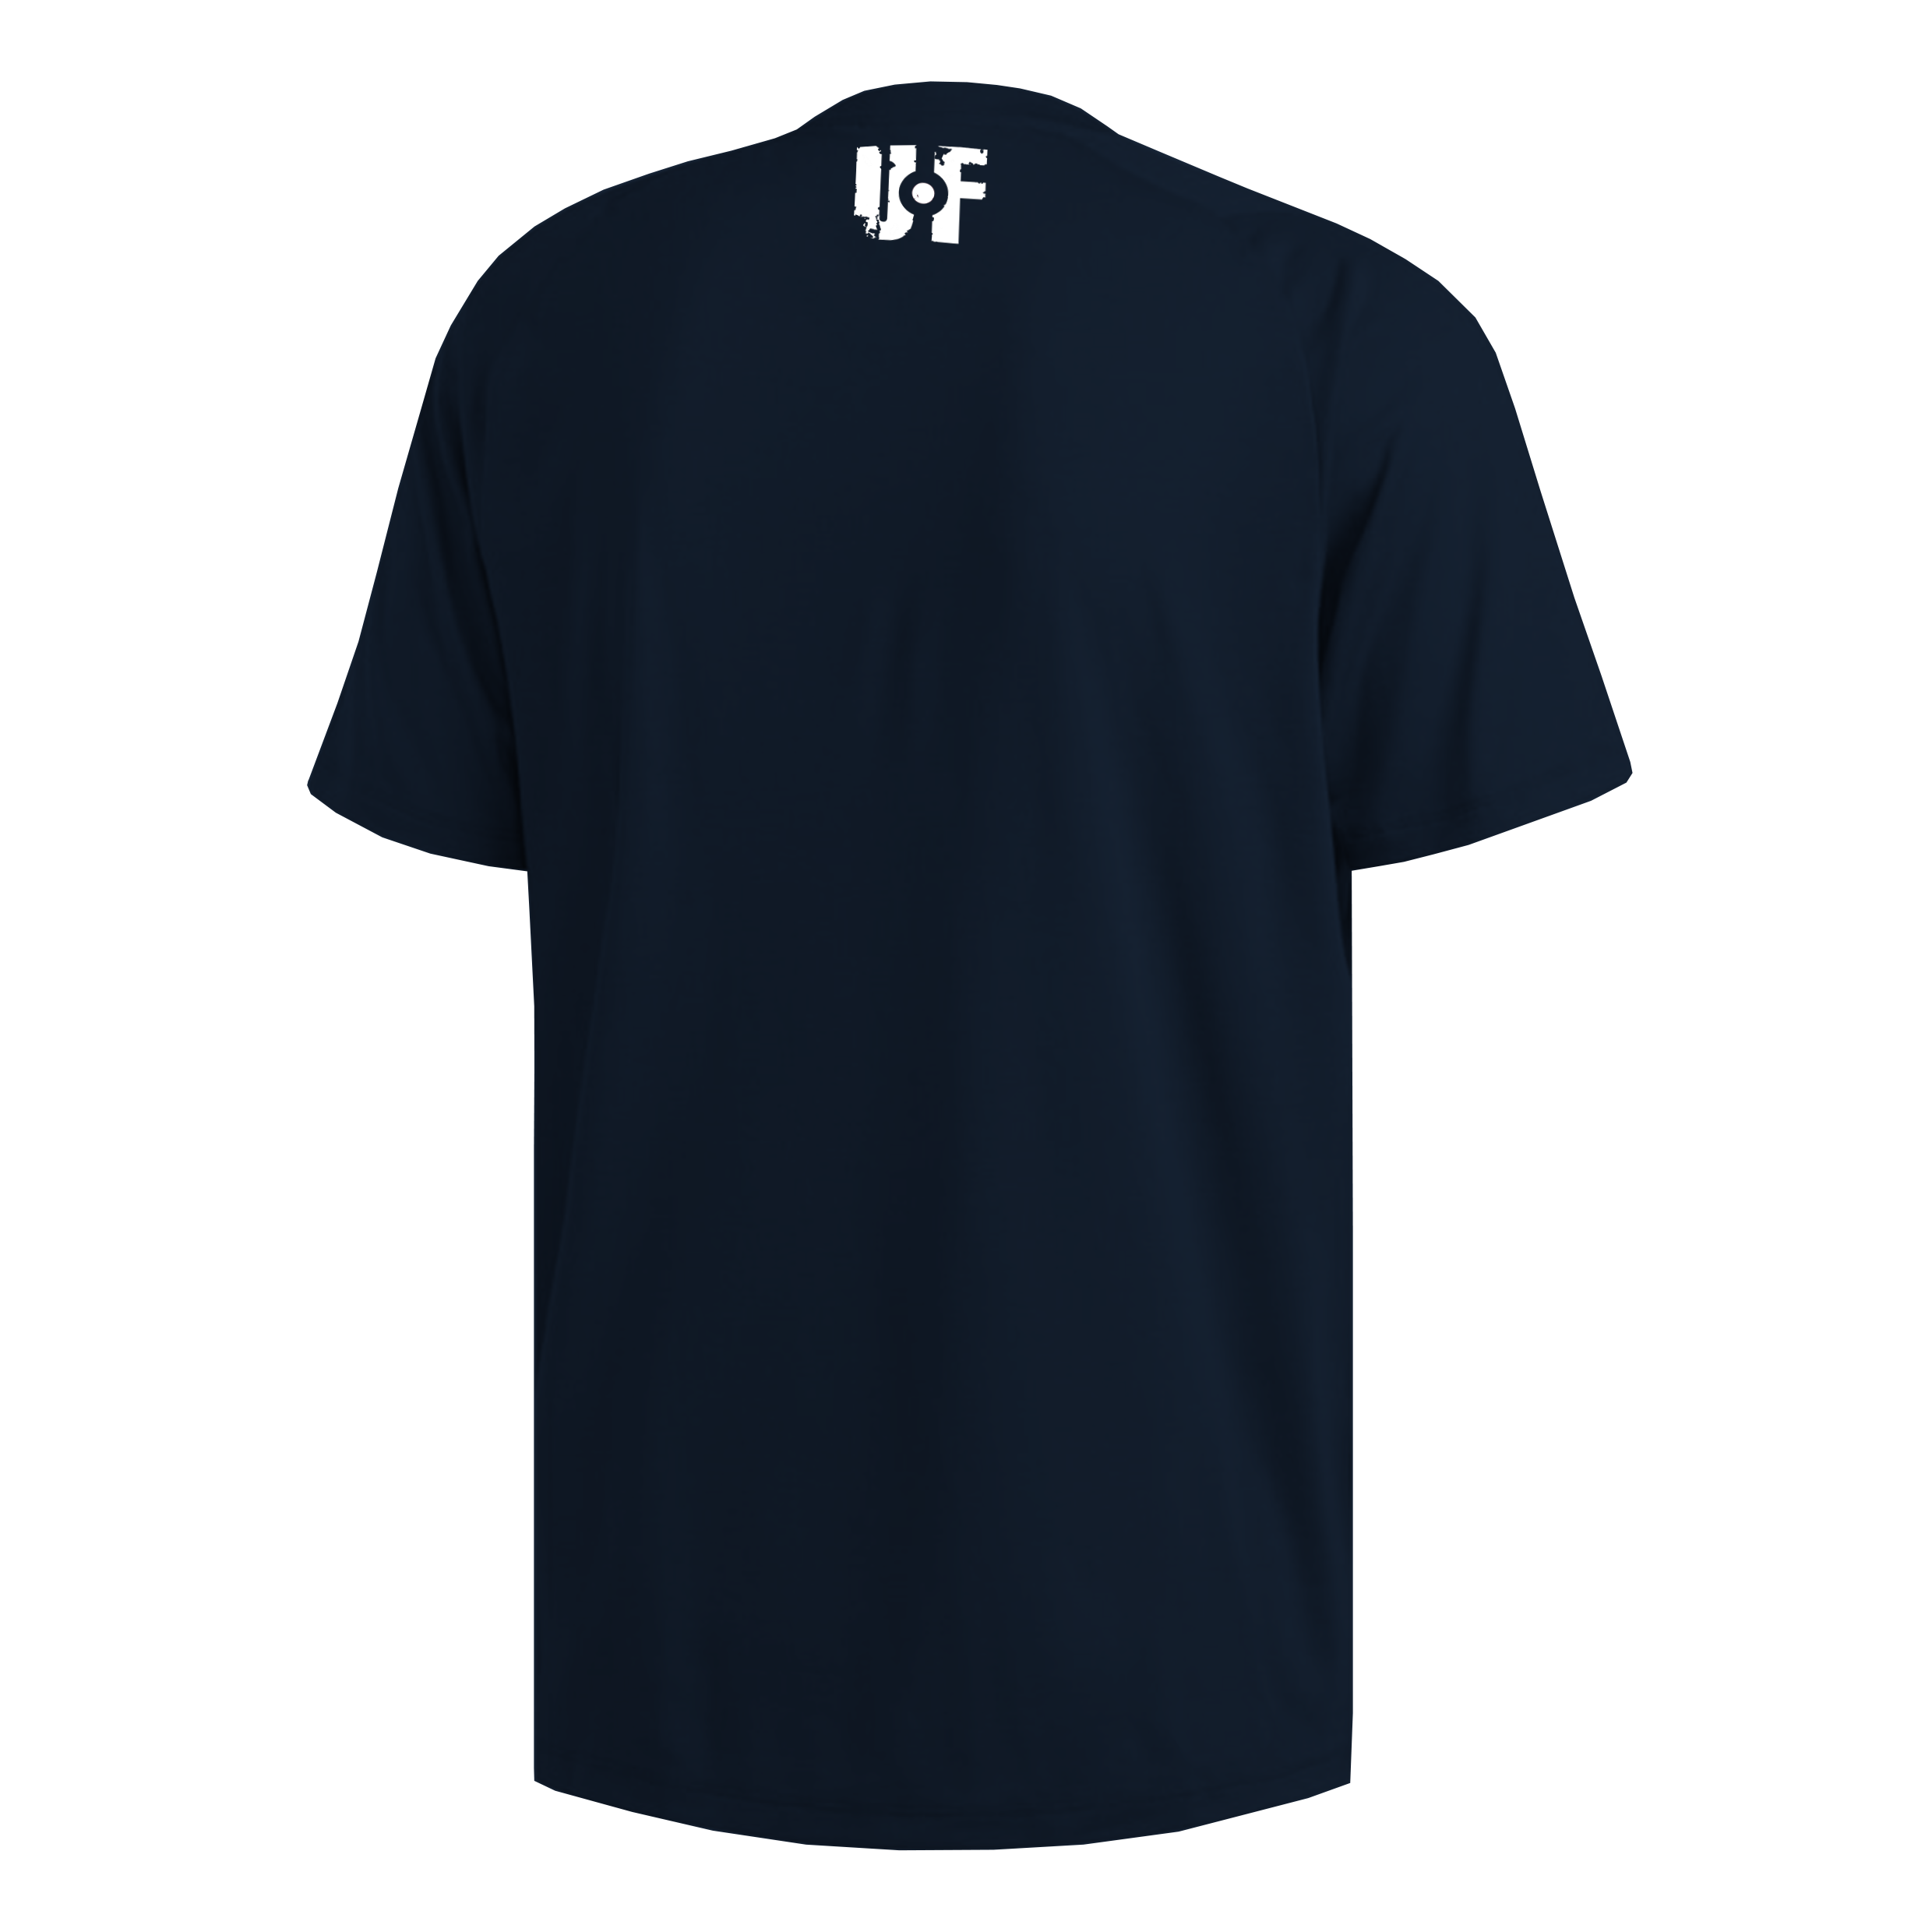 T-shirt Grand logo navy 2